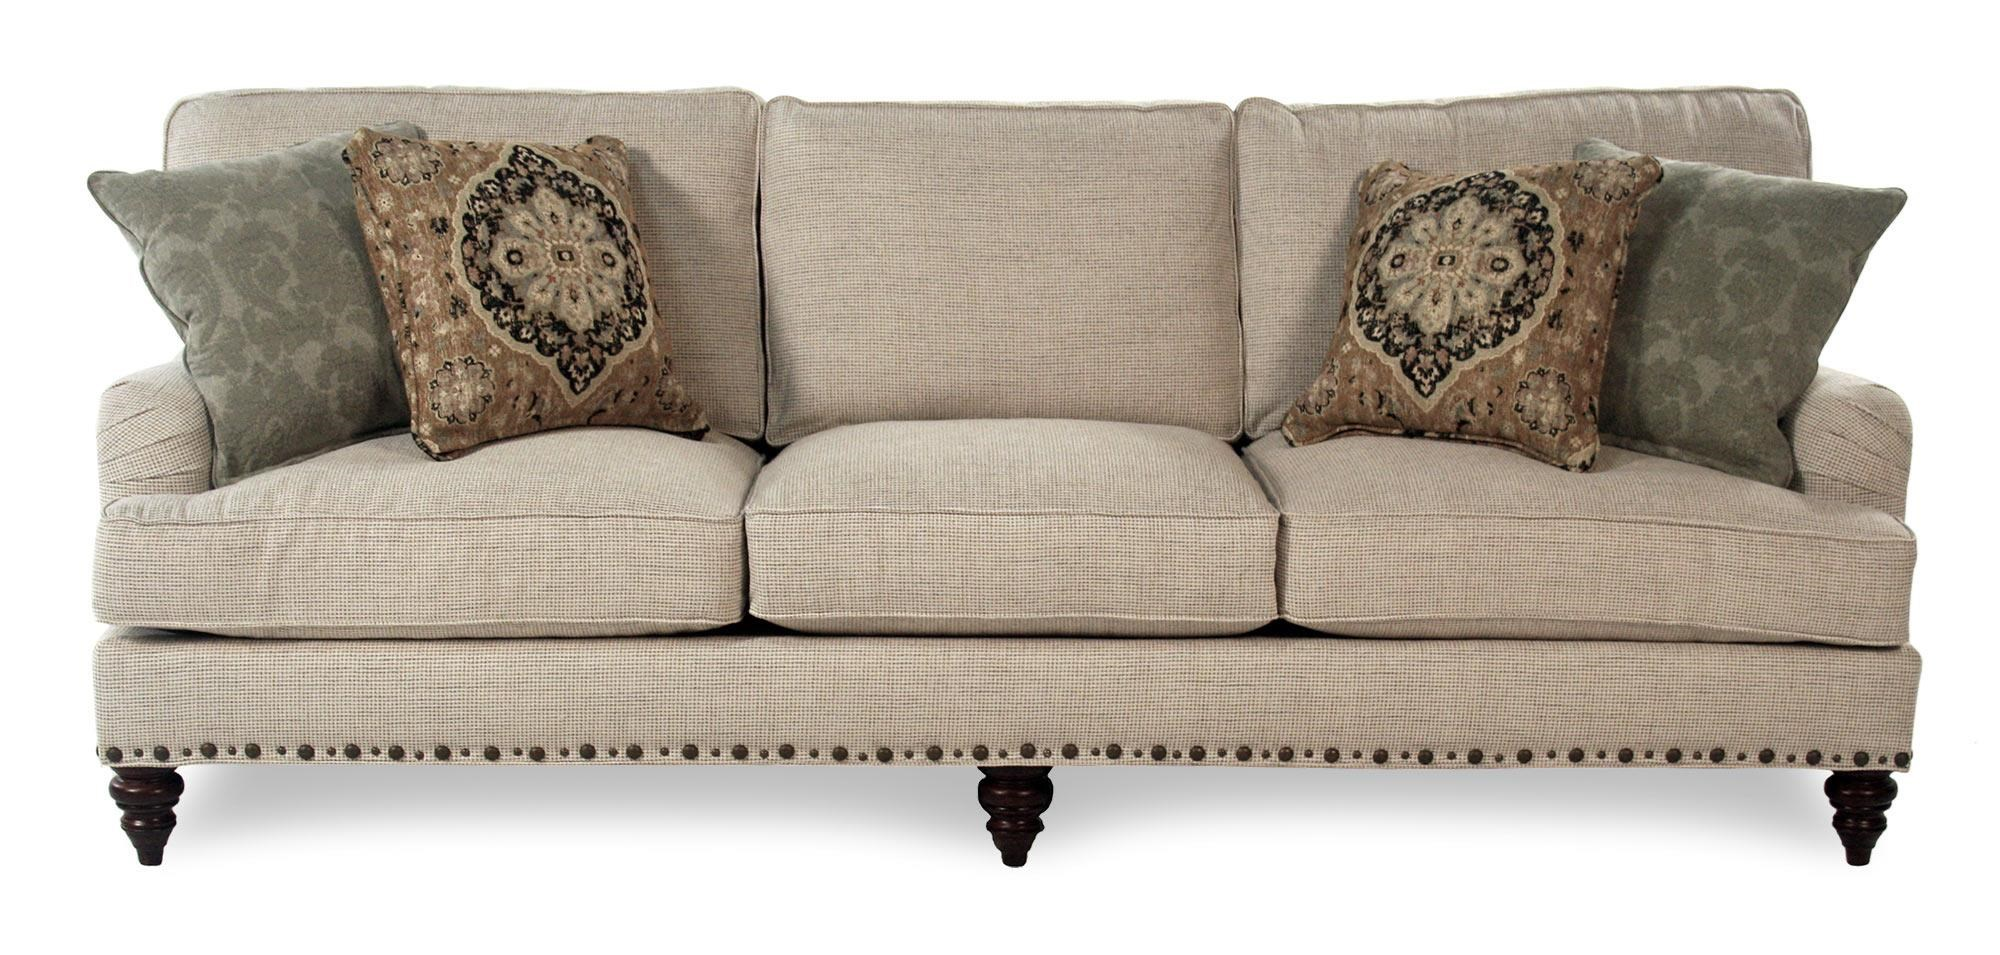 Broyhill Furniture Jarrod Sofa - Item Number: 4283-3-4695-08B